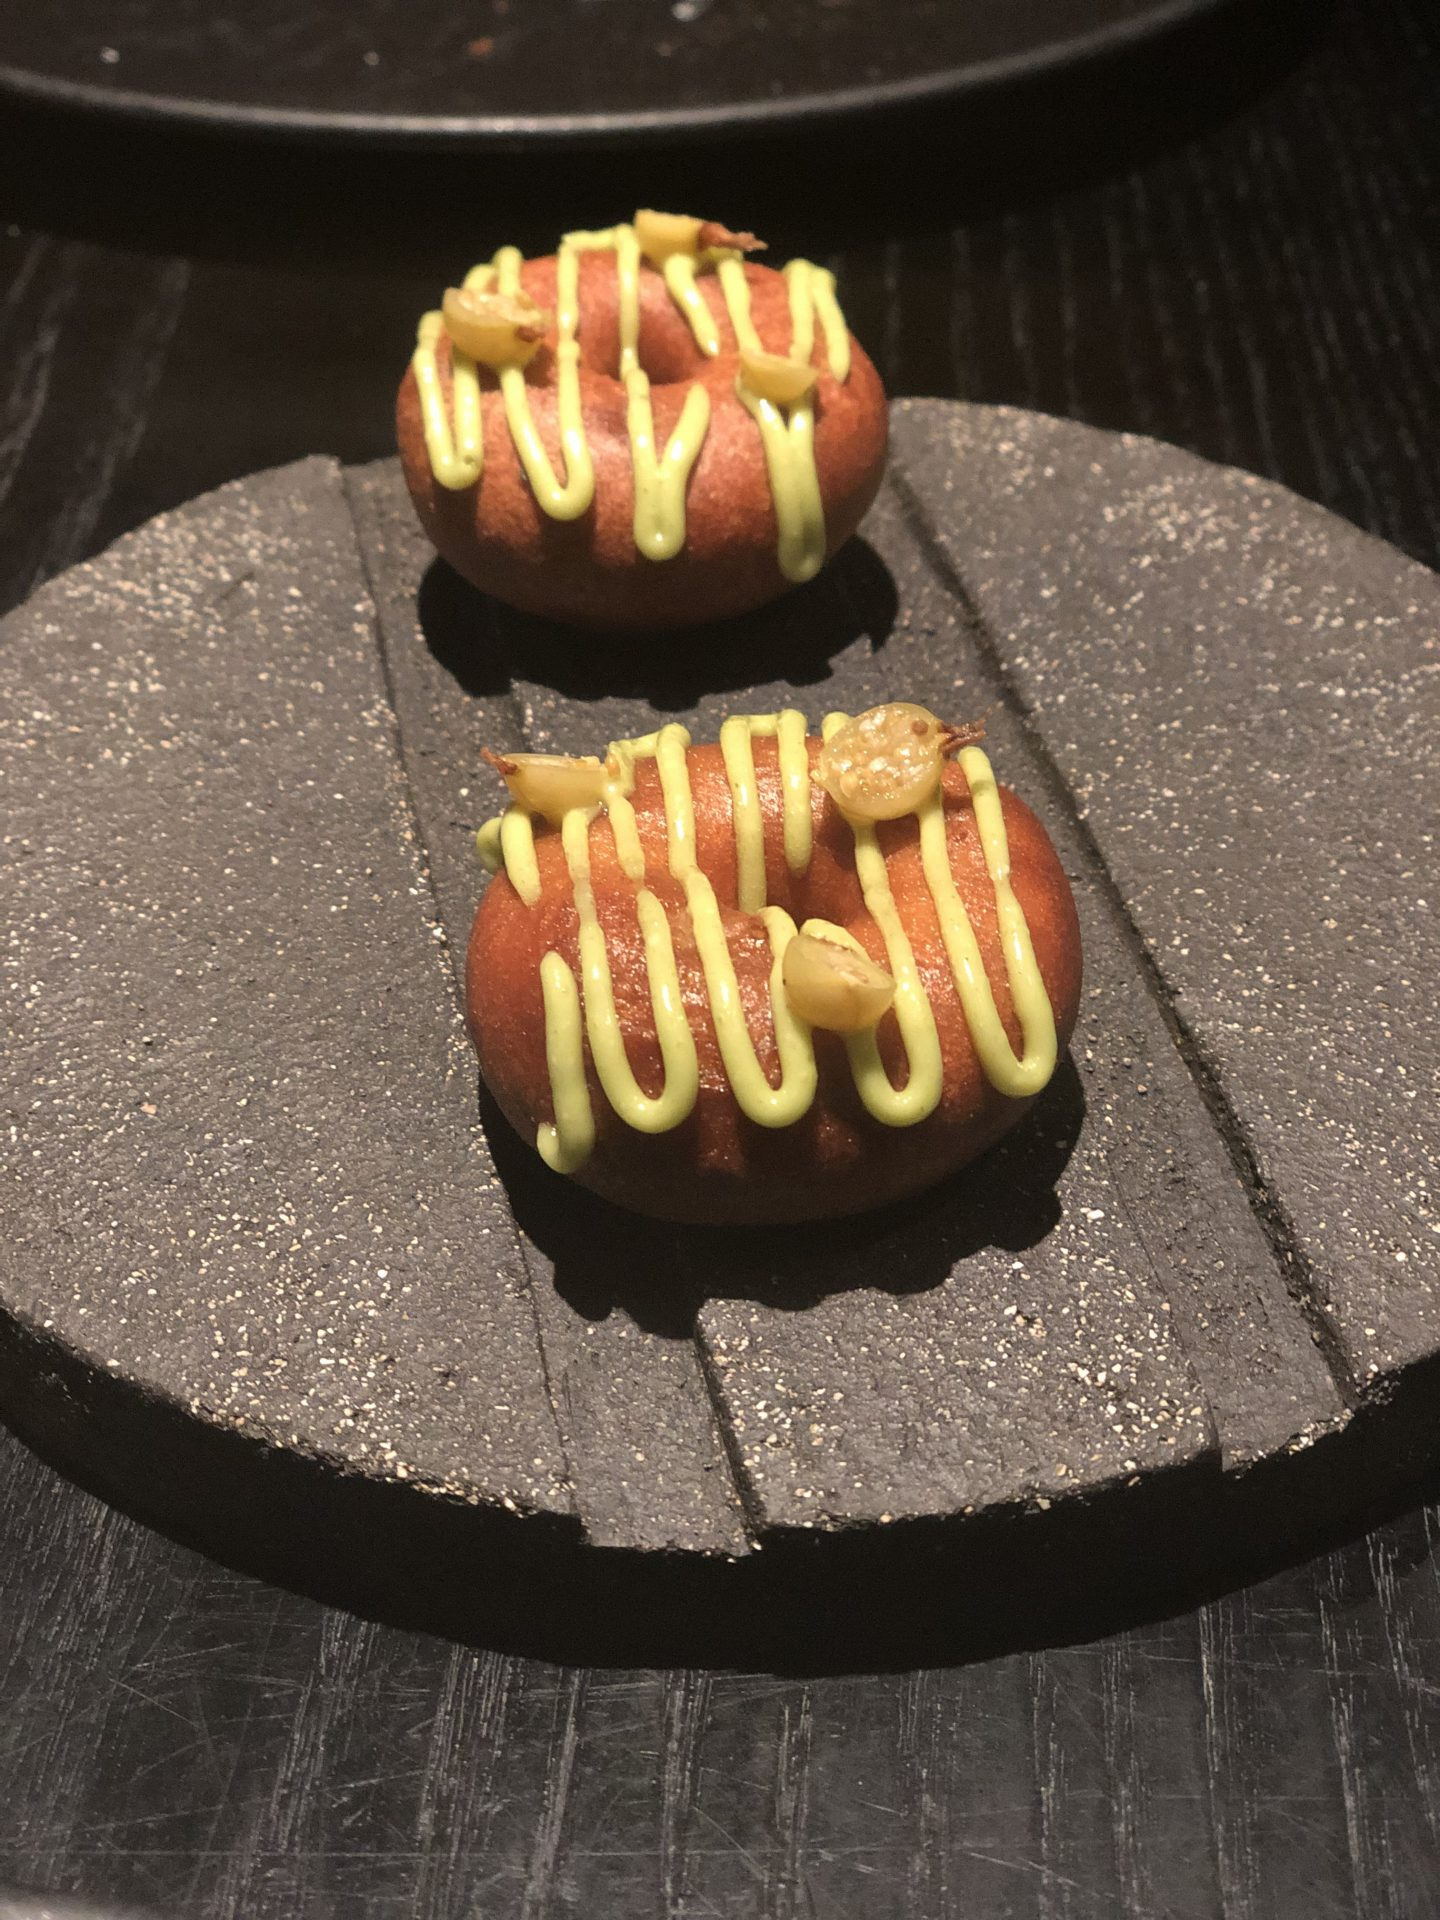 best restaurants in Vilnius: Džiaugsmas duck dougnuts, a warm orange colour with bright yellow sauce on top, served on a round slate plate.